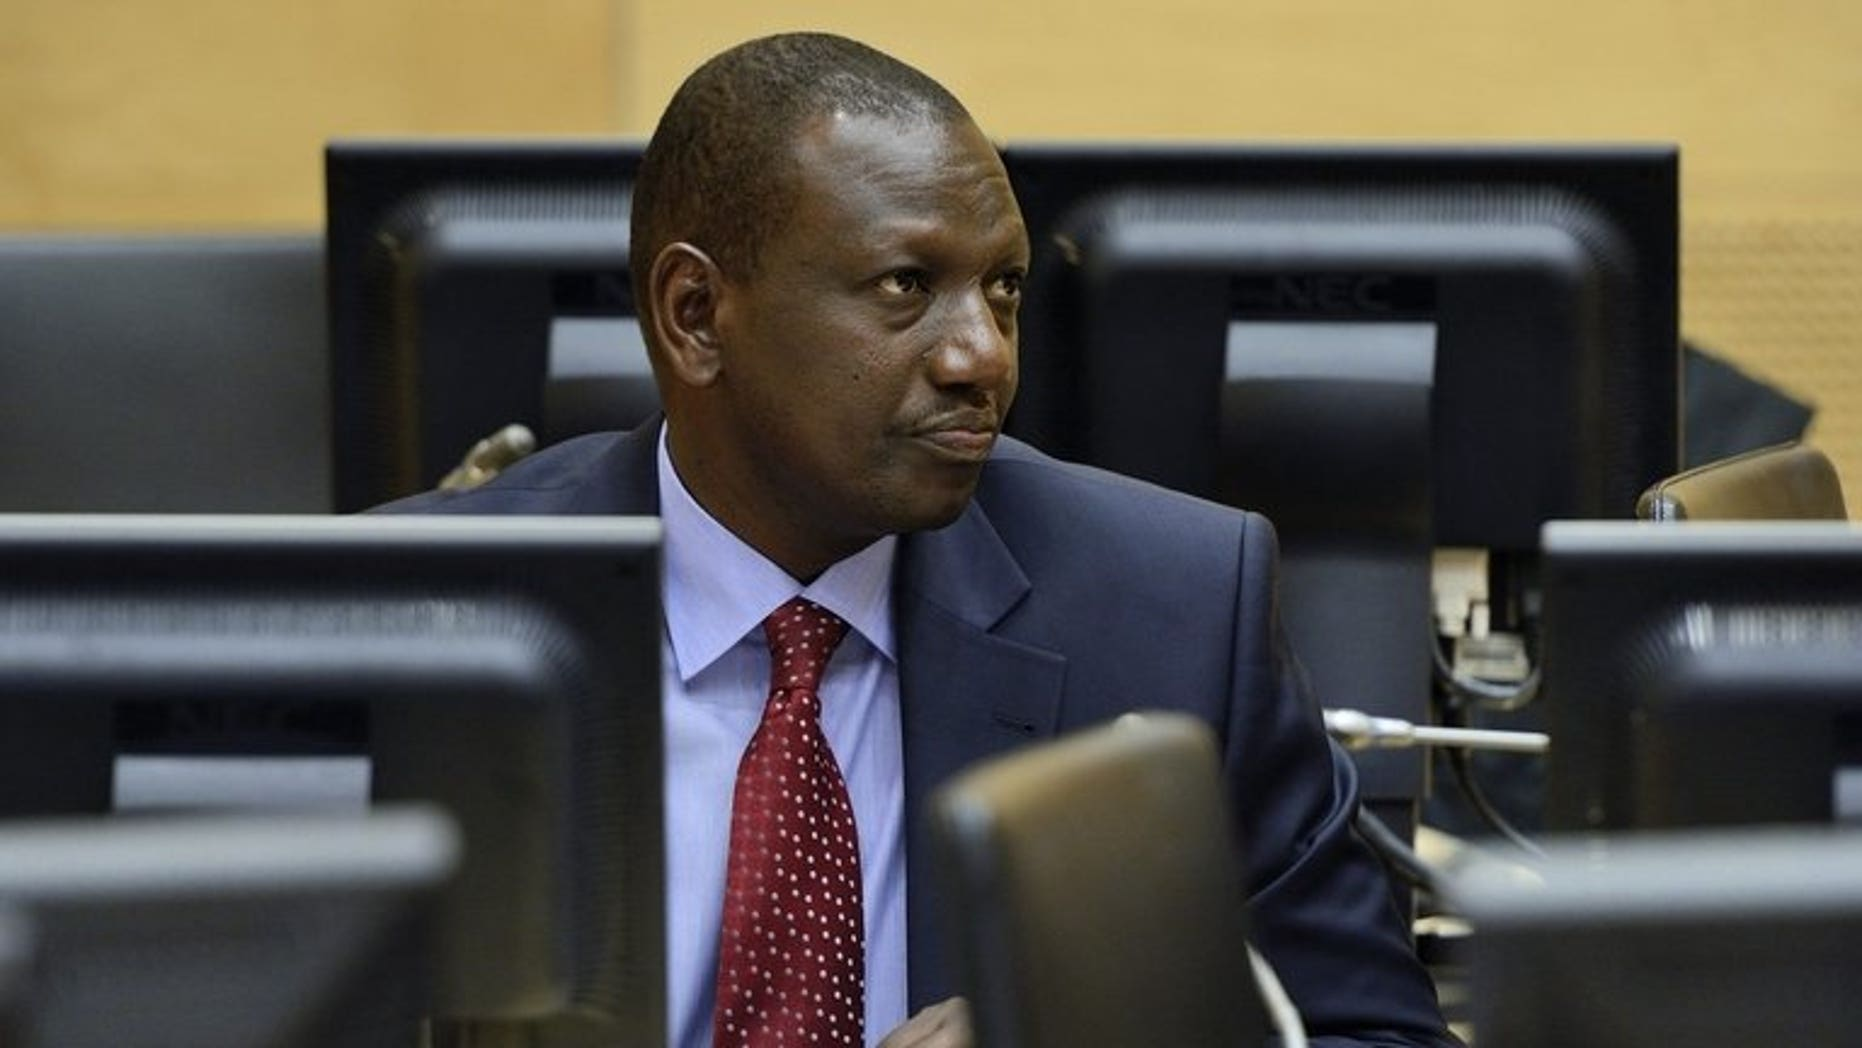 Former Kenyan vice-President William Ruto looks on during a hearing in the International Criminal Court in the Hague, Netherlands, on May 14, 2013.